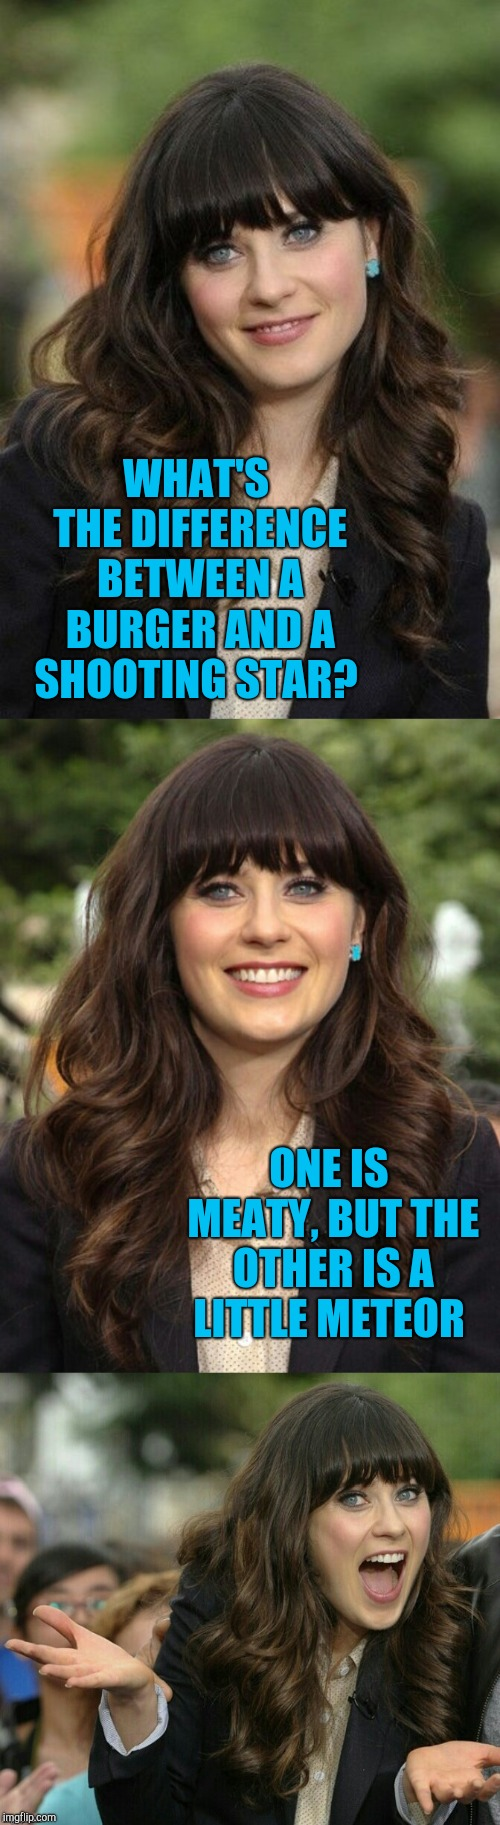 Zooey Deschanel joke template | WHAT'S THE DIFFERENCE BETWEEN A BURGER AND A SHOOTING STAR? ONE IS MEATY, BUT THE OTHER IS A LITTLE METEOR | image tagged in zooey deschanel joke template,jbmemegeek,zooey deschanel,bad puns | made w/ Imgflip meme maker